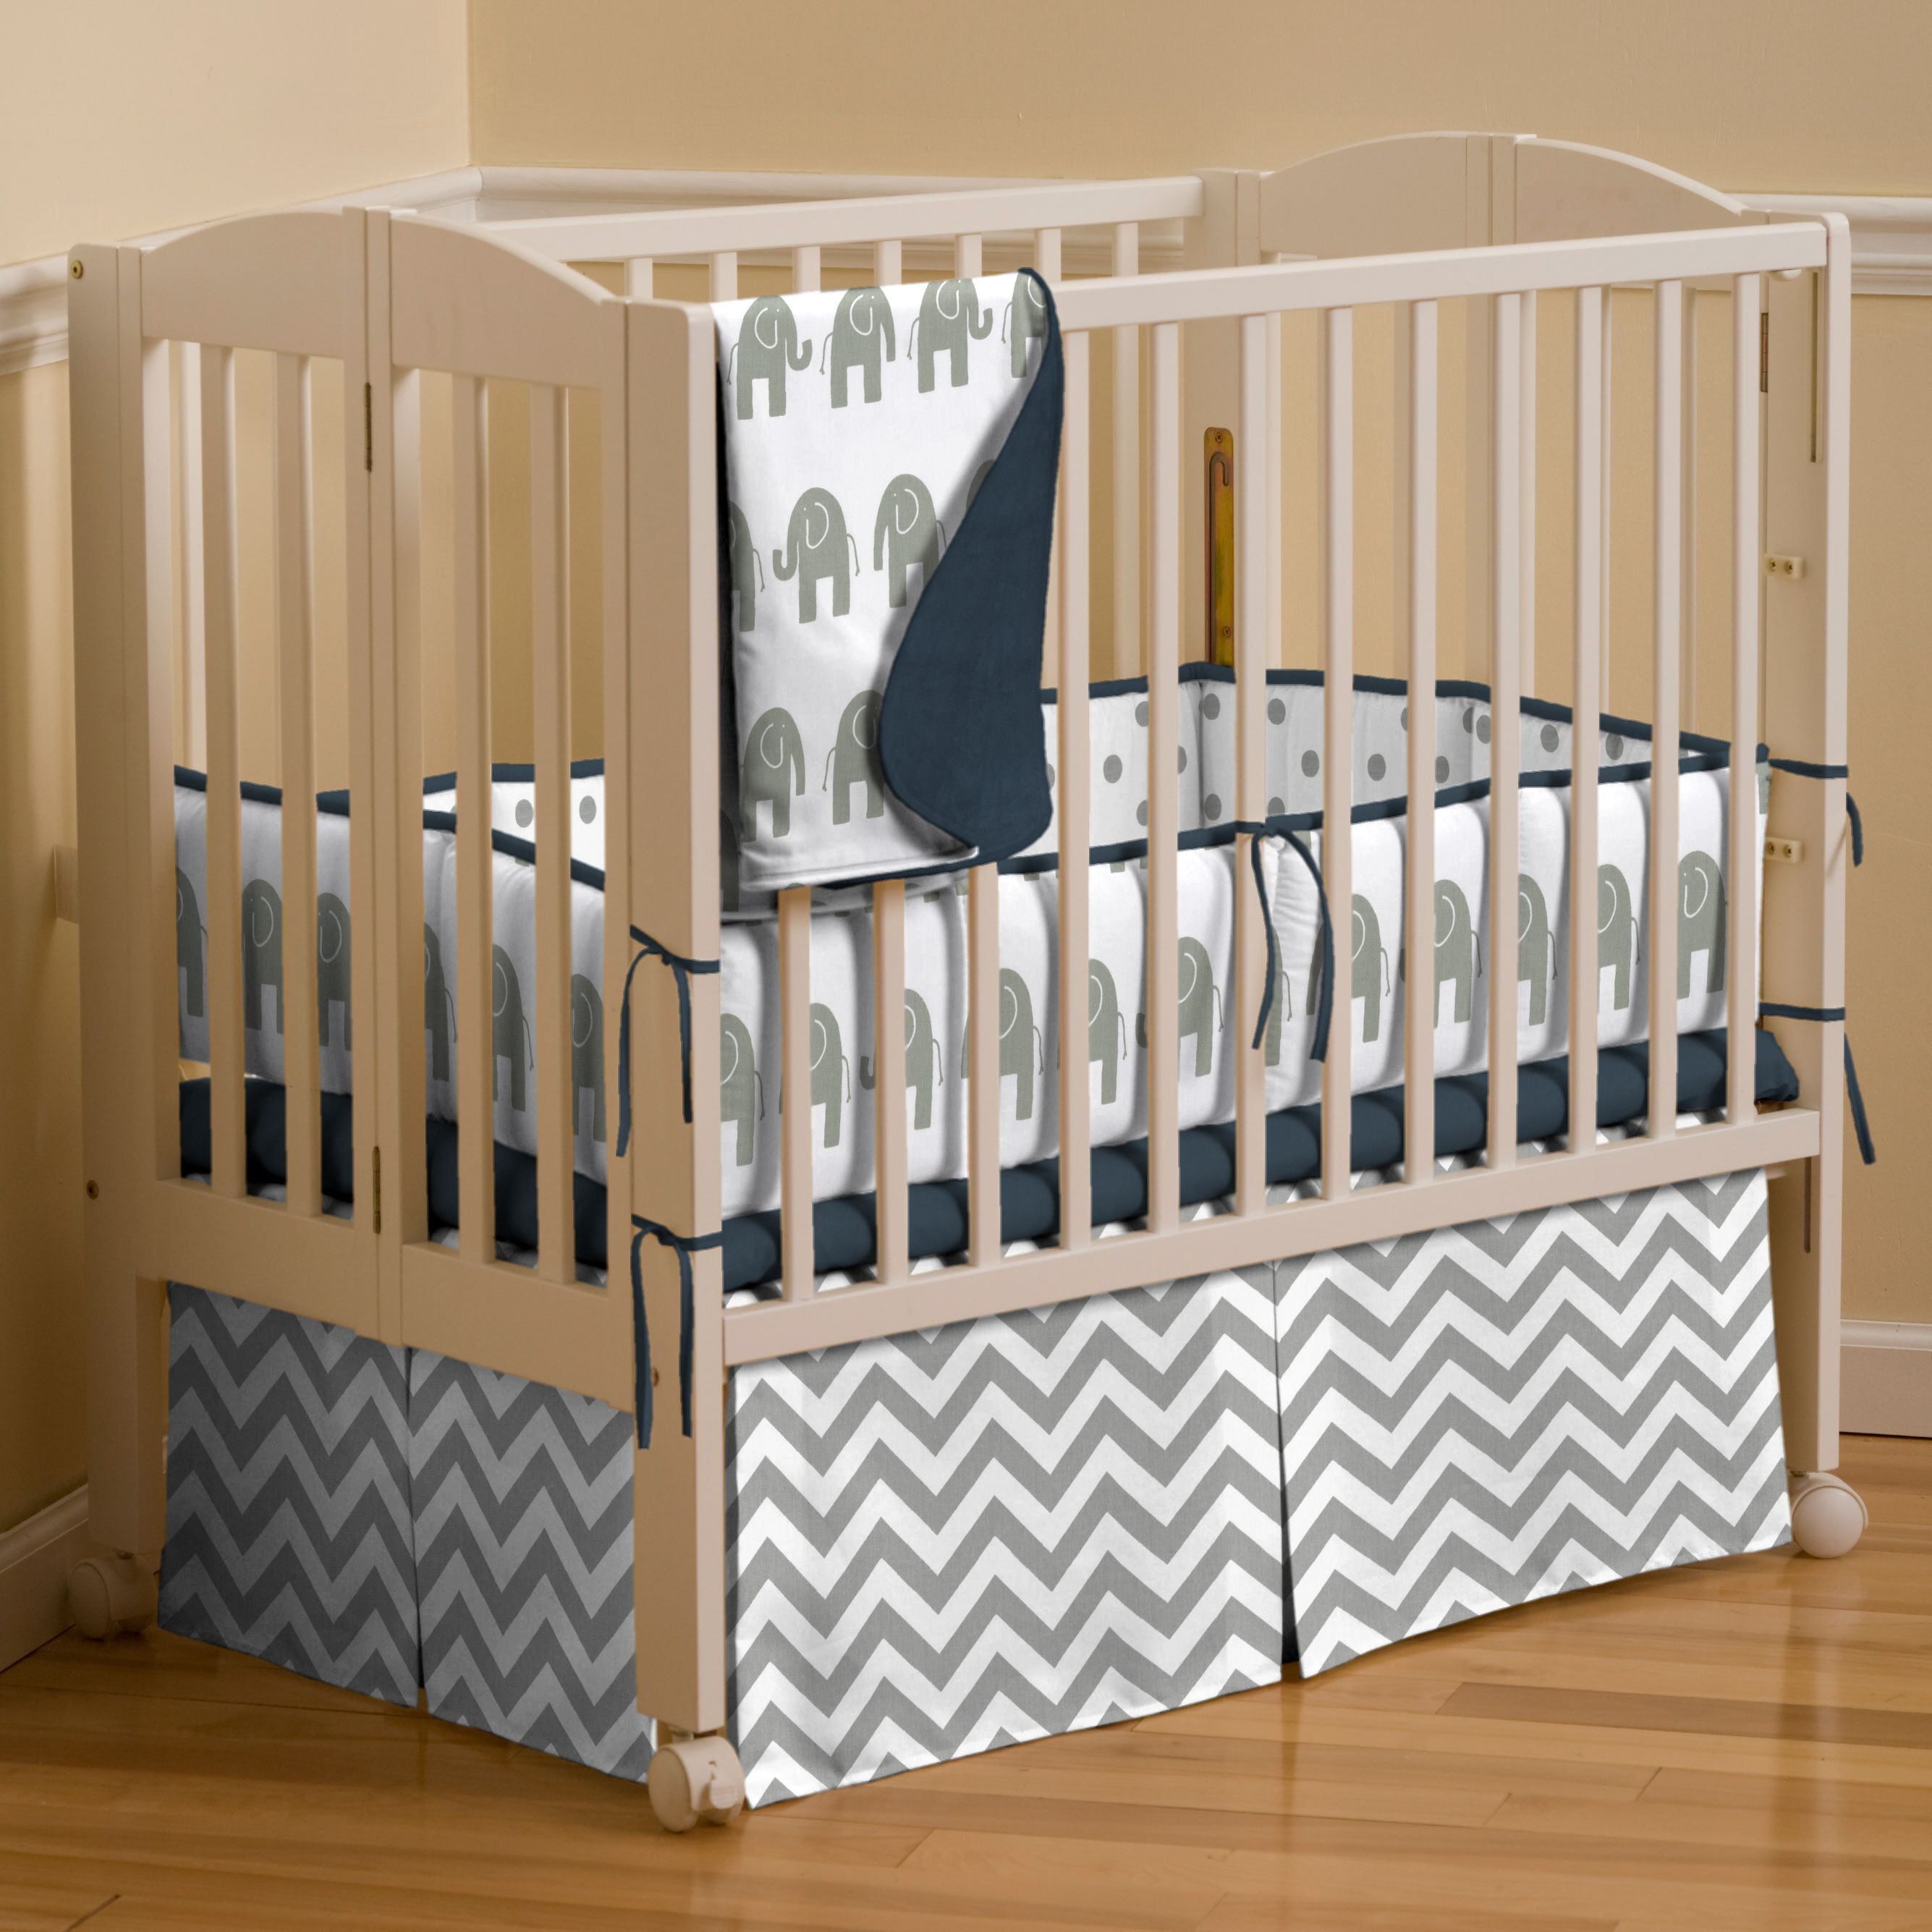 Gray Elephants Mini Crib Bedding